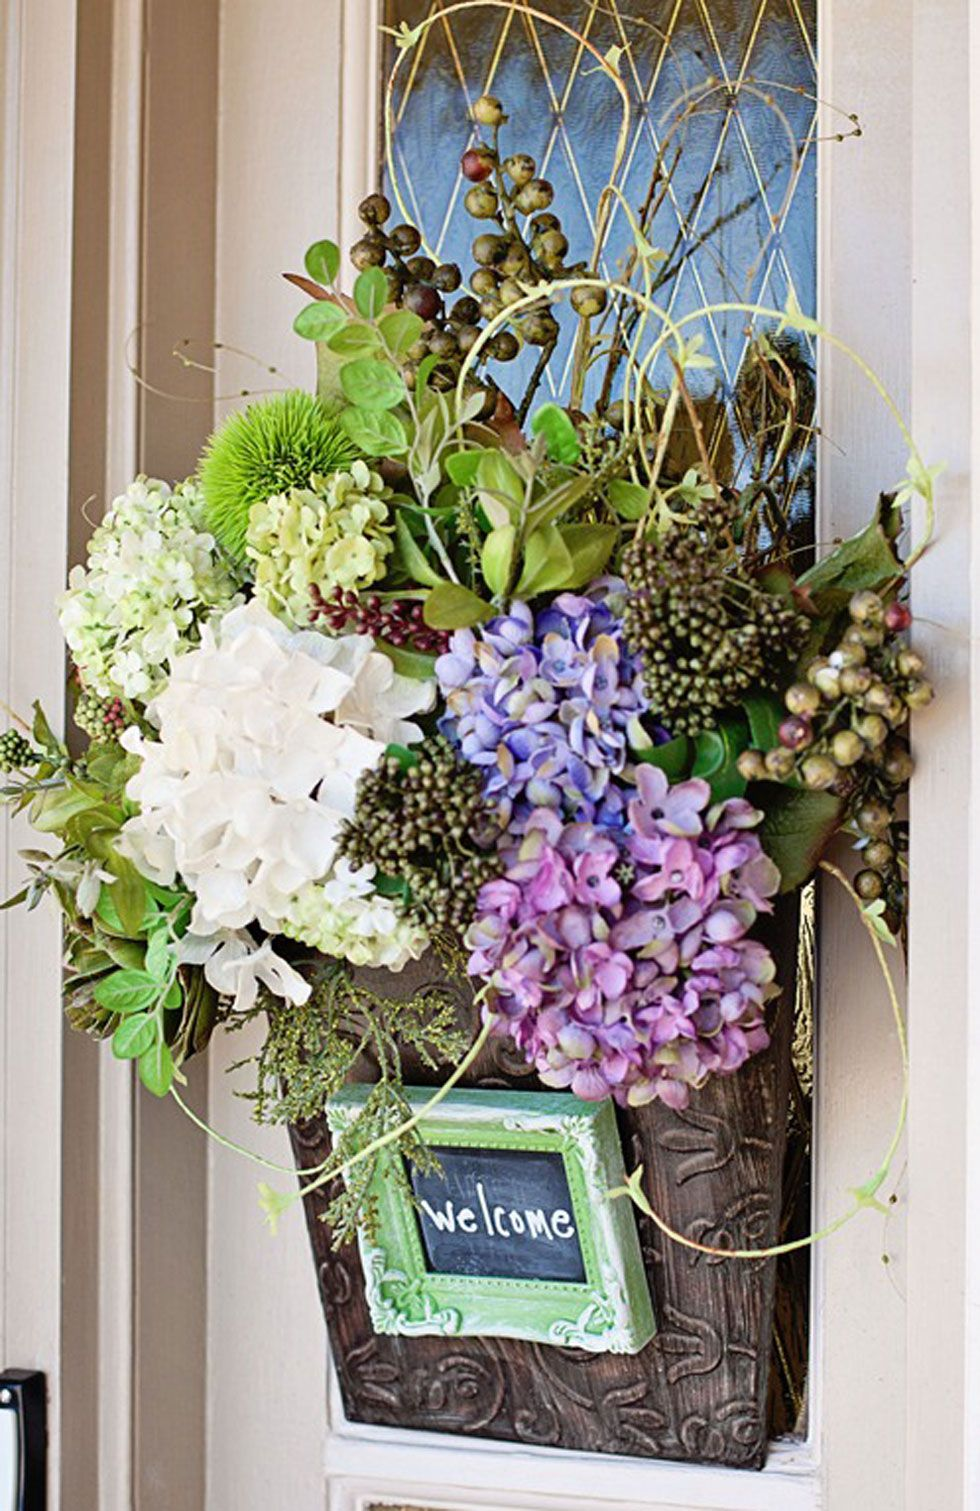 12 Beautiful Decorations to Hang on Your Door That Arenu0027t Wreaths & 12 Beautiful Decorations to Hang on Your Door That Arenu0027t Wreaths ... pezcame.com